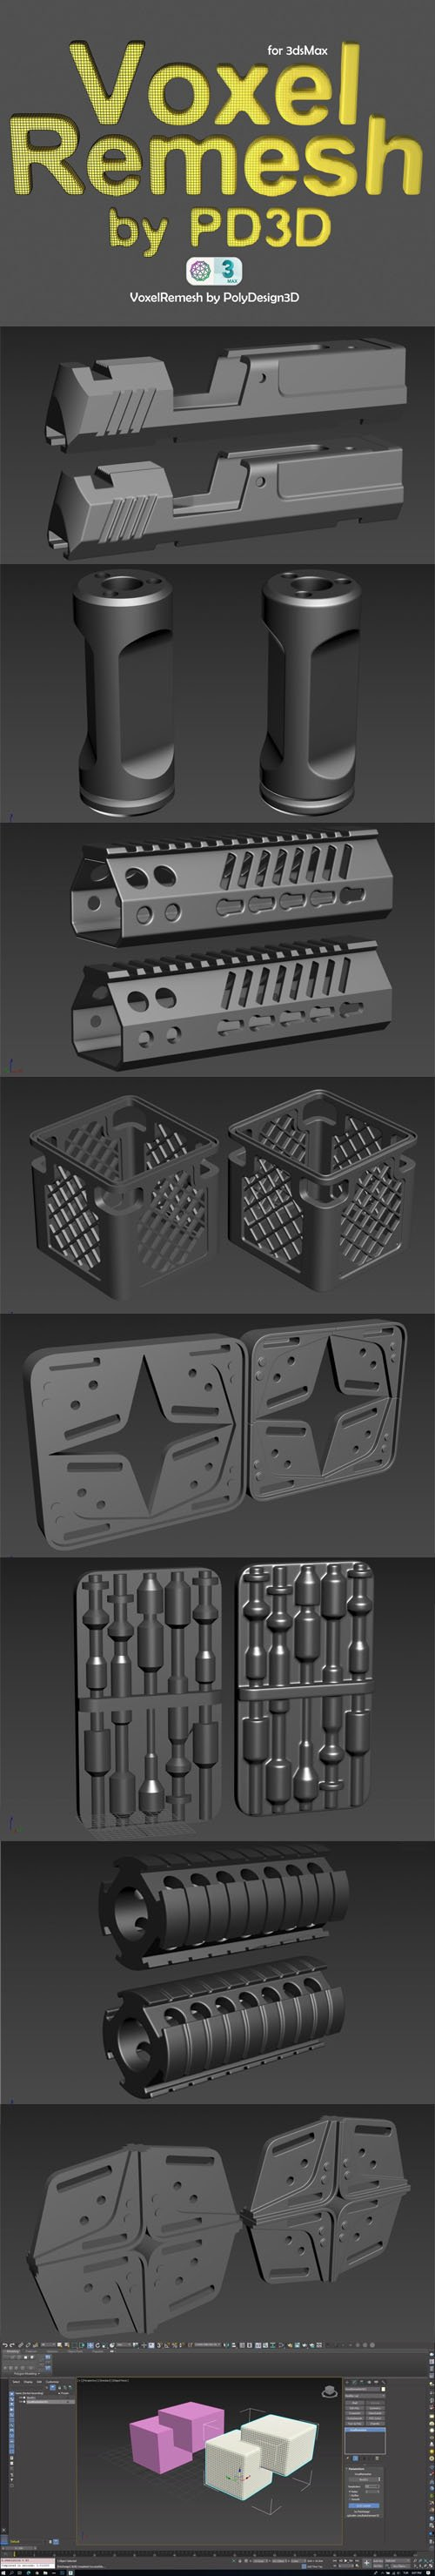 Voxel Remesh 1.0 for 3ds Max